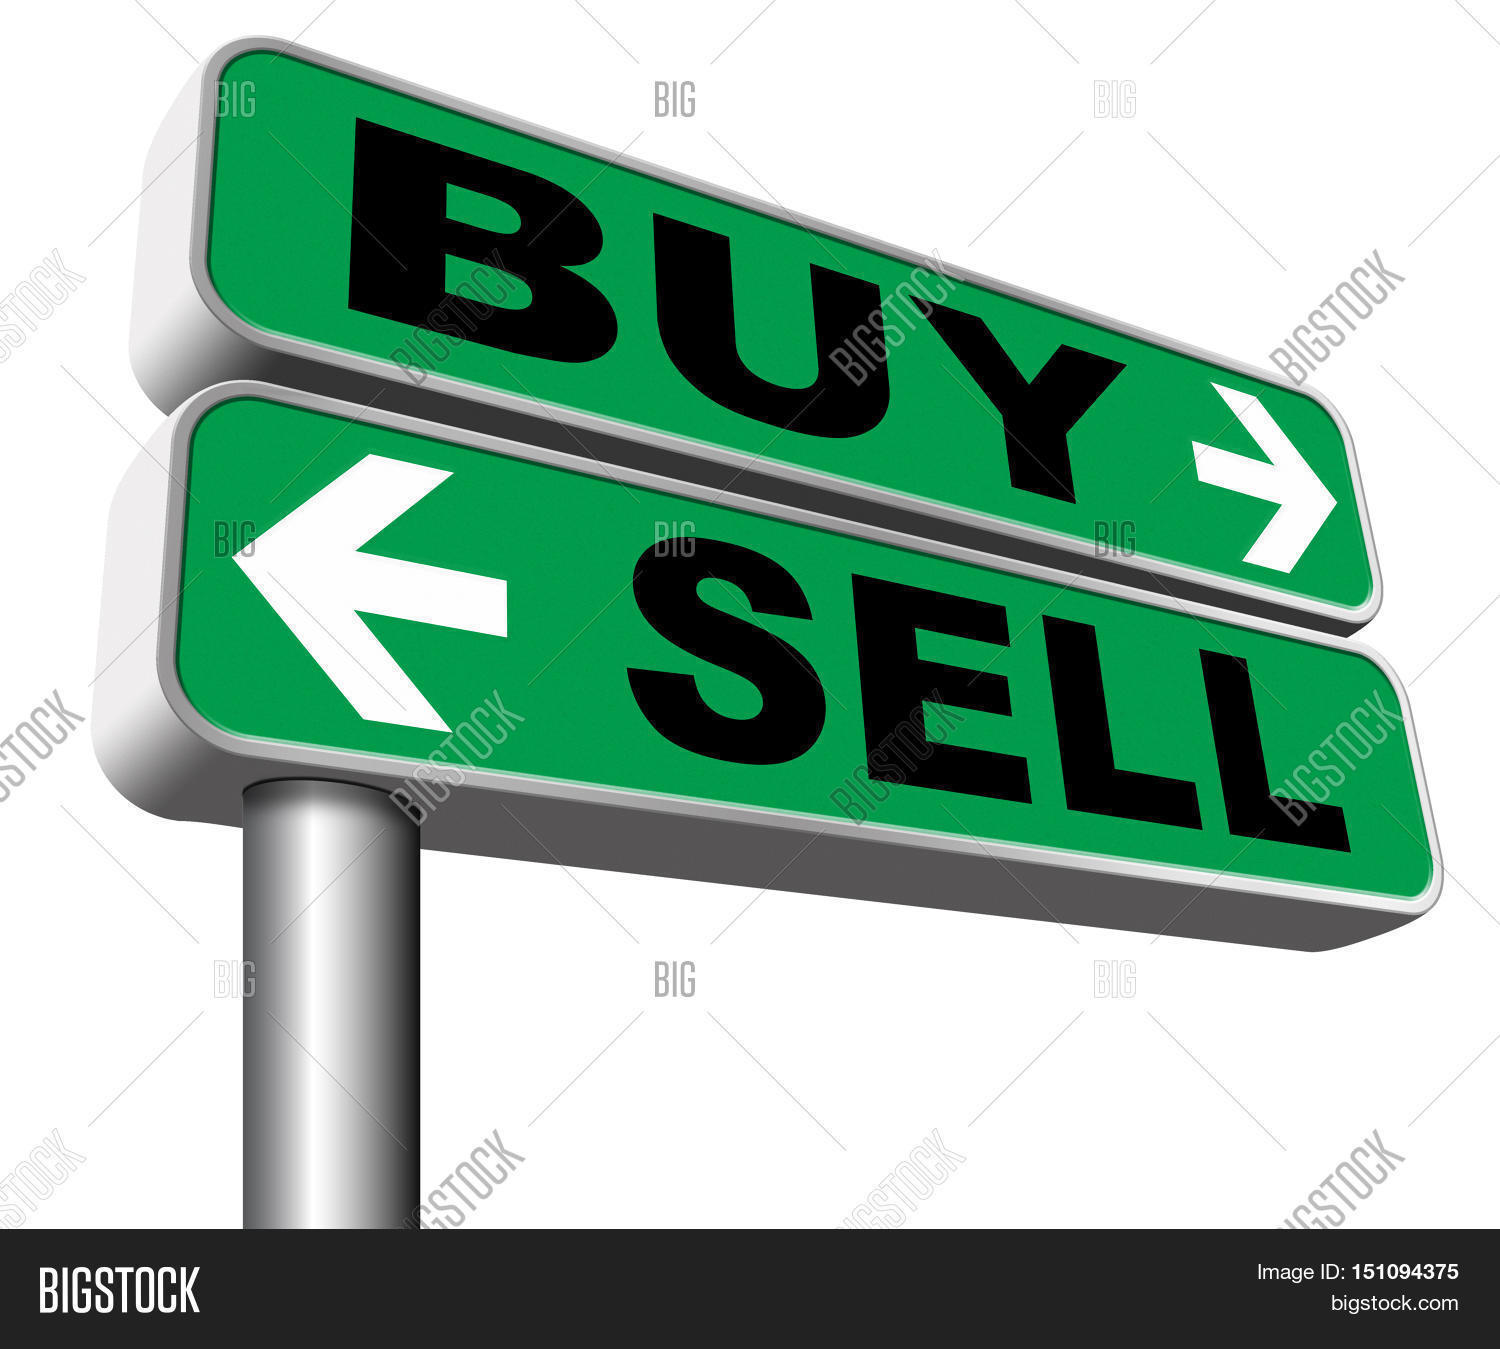 buy or sell market share buying or selling on stock market.